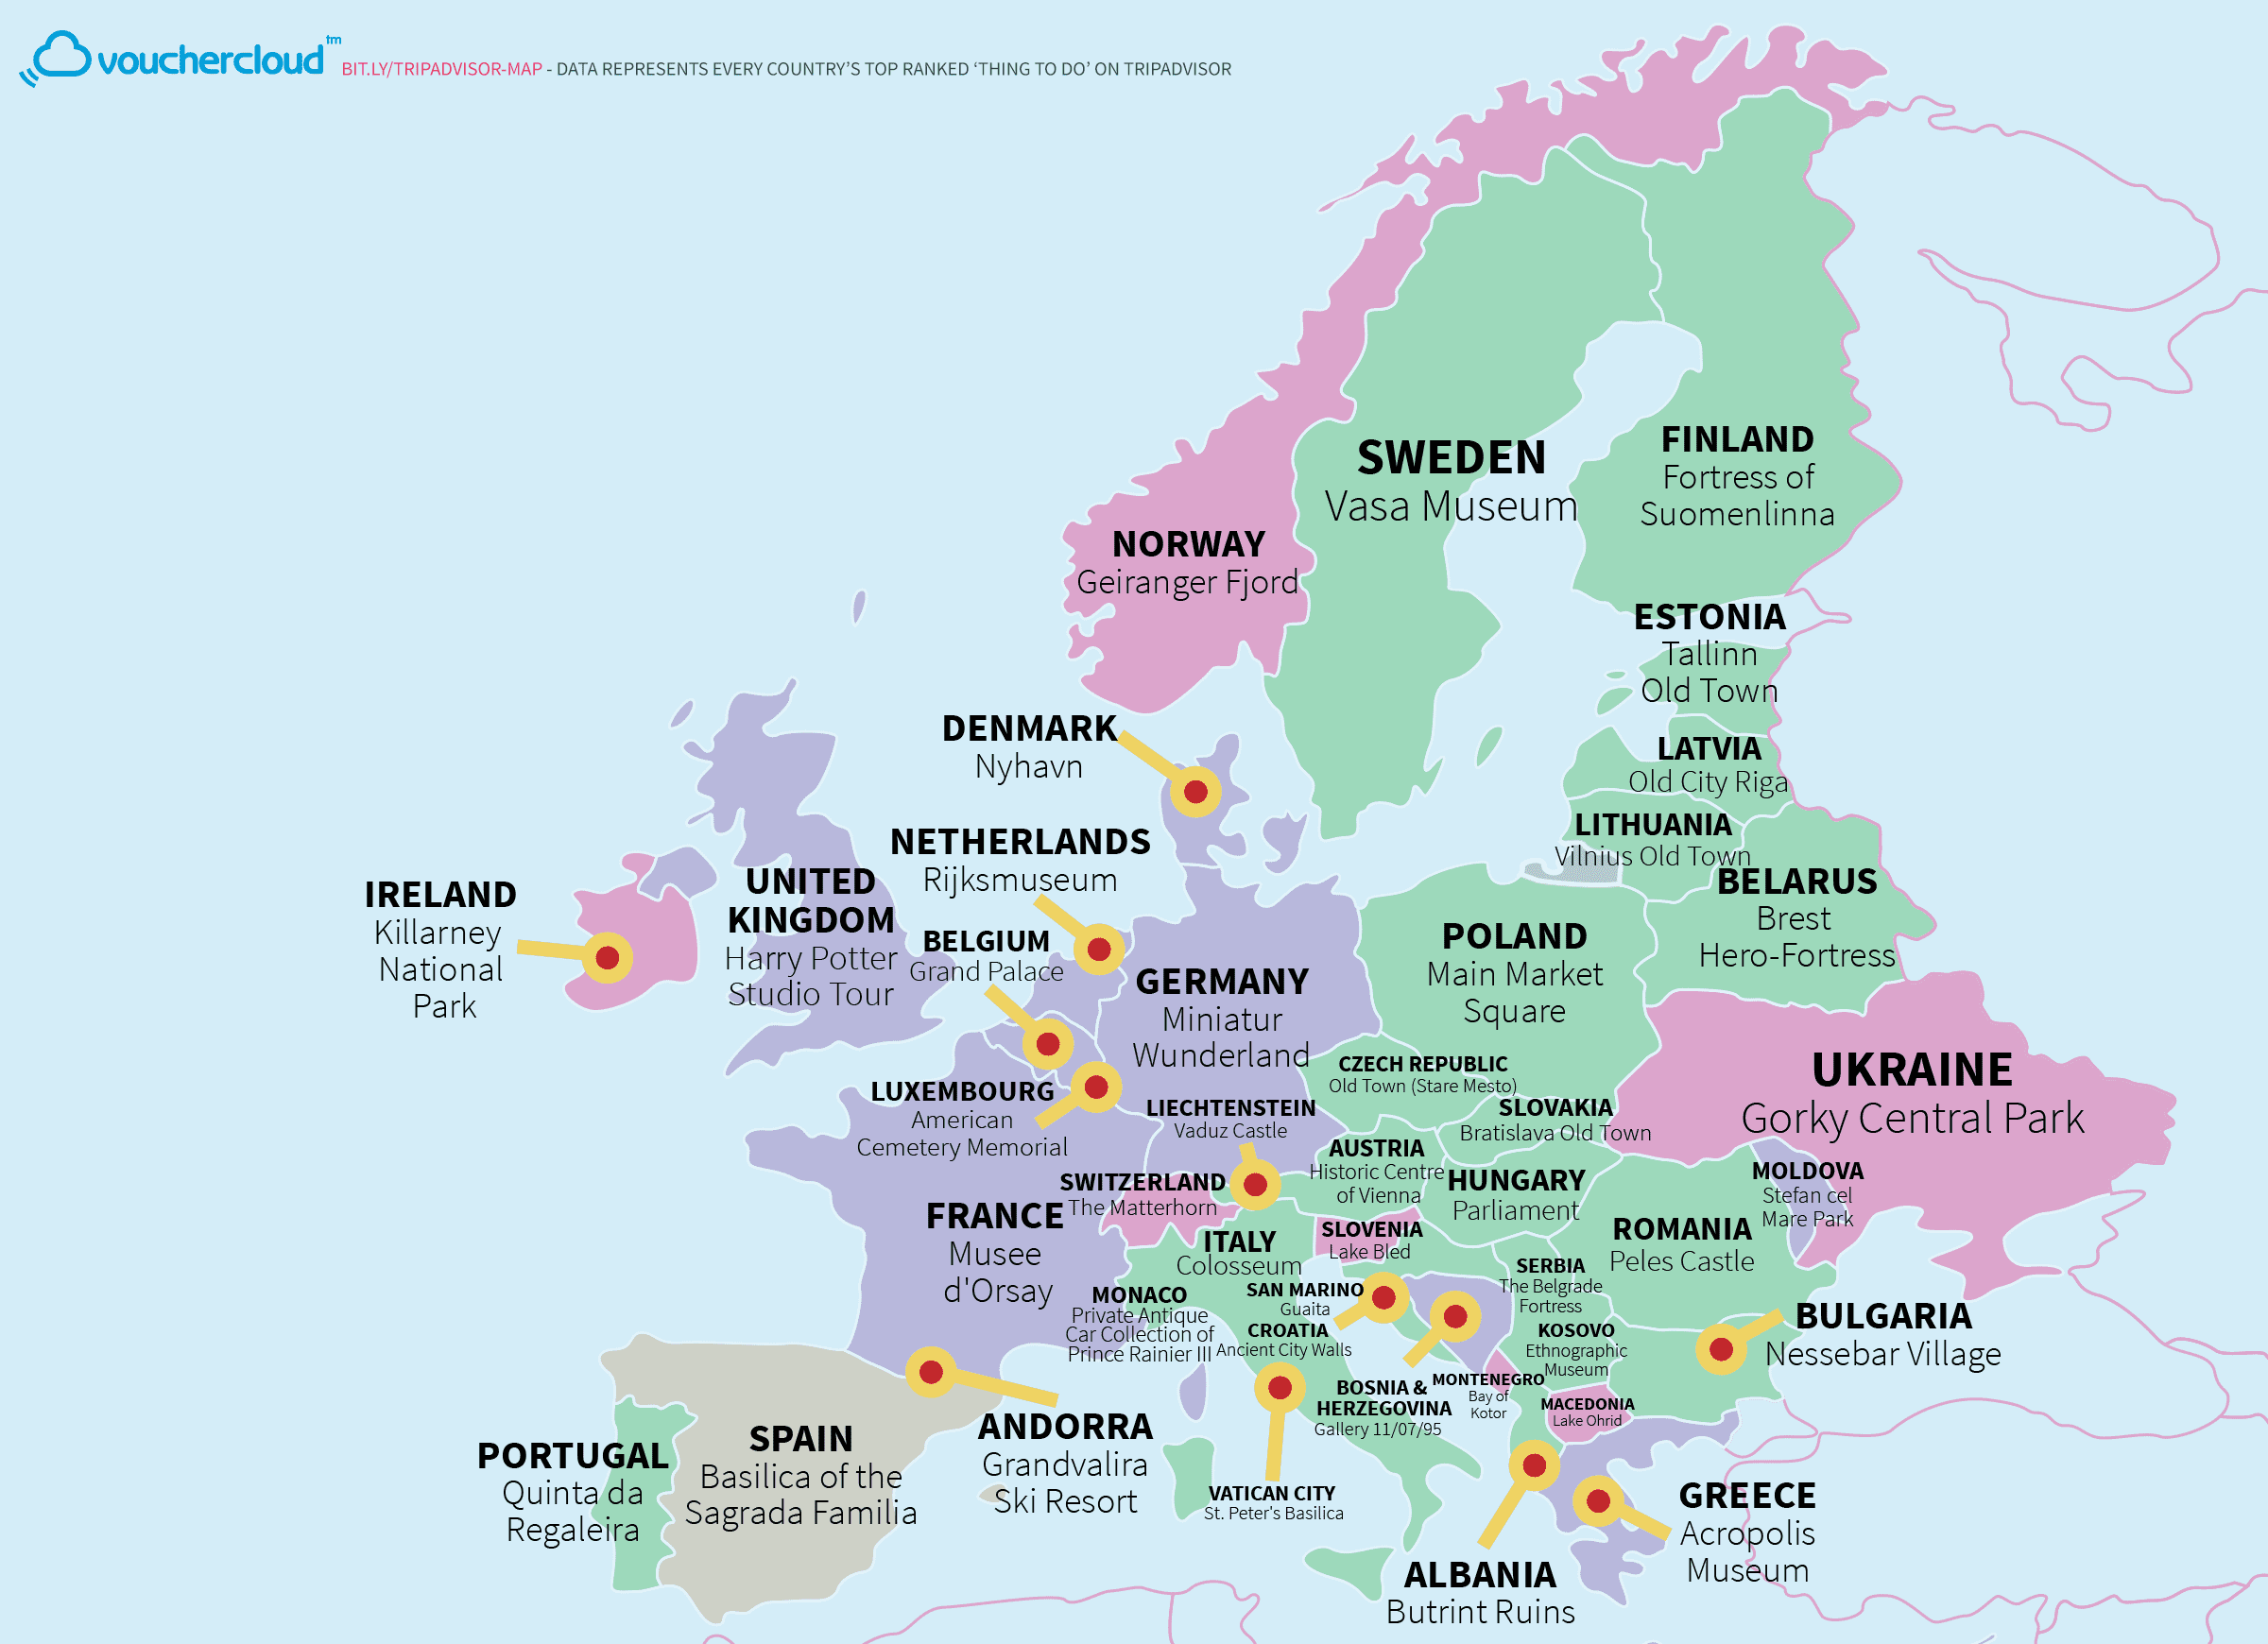 This Really Cool Map Shows The World's Top Tourist Destinations